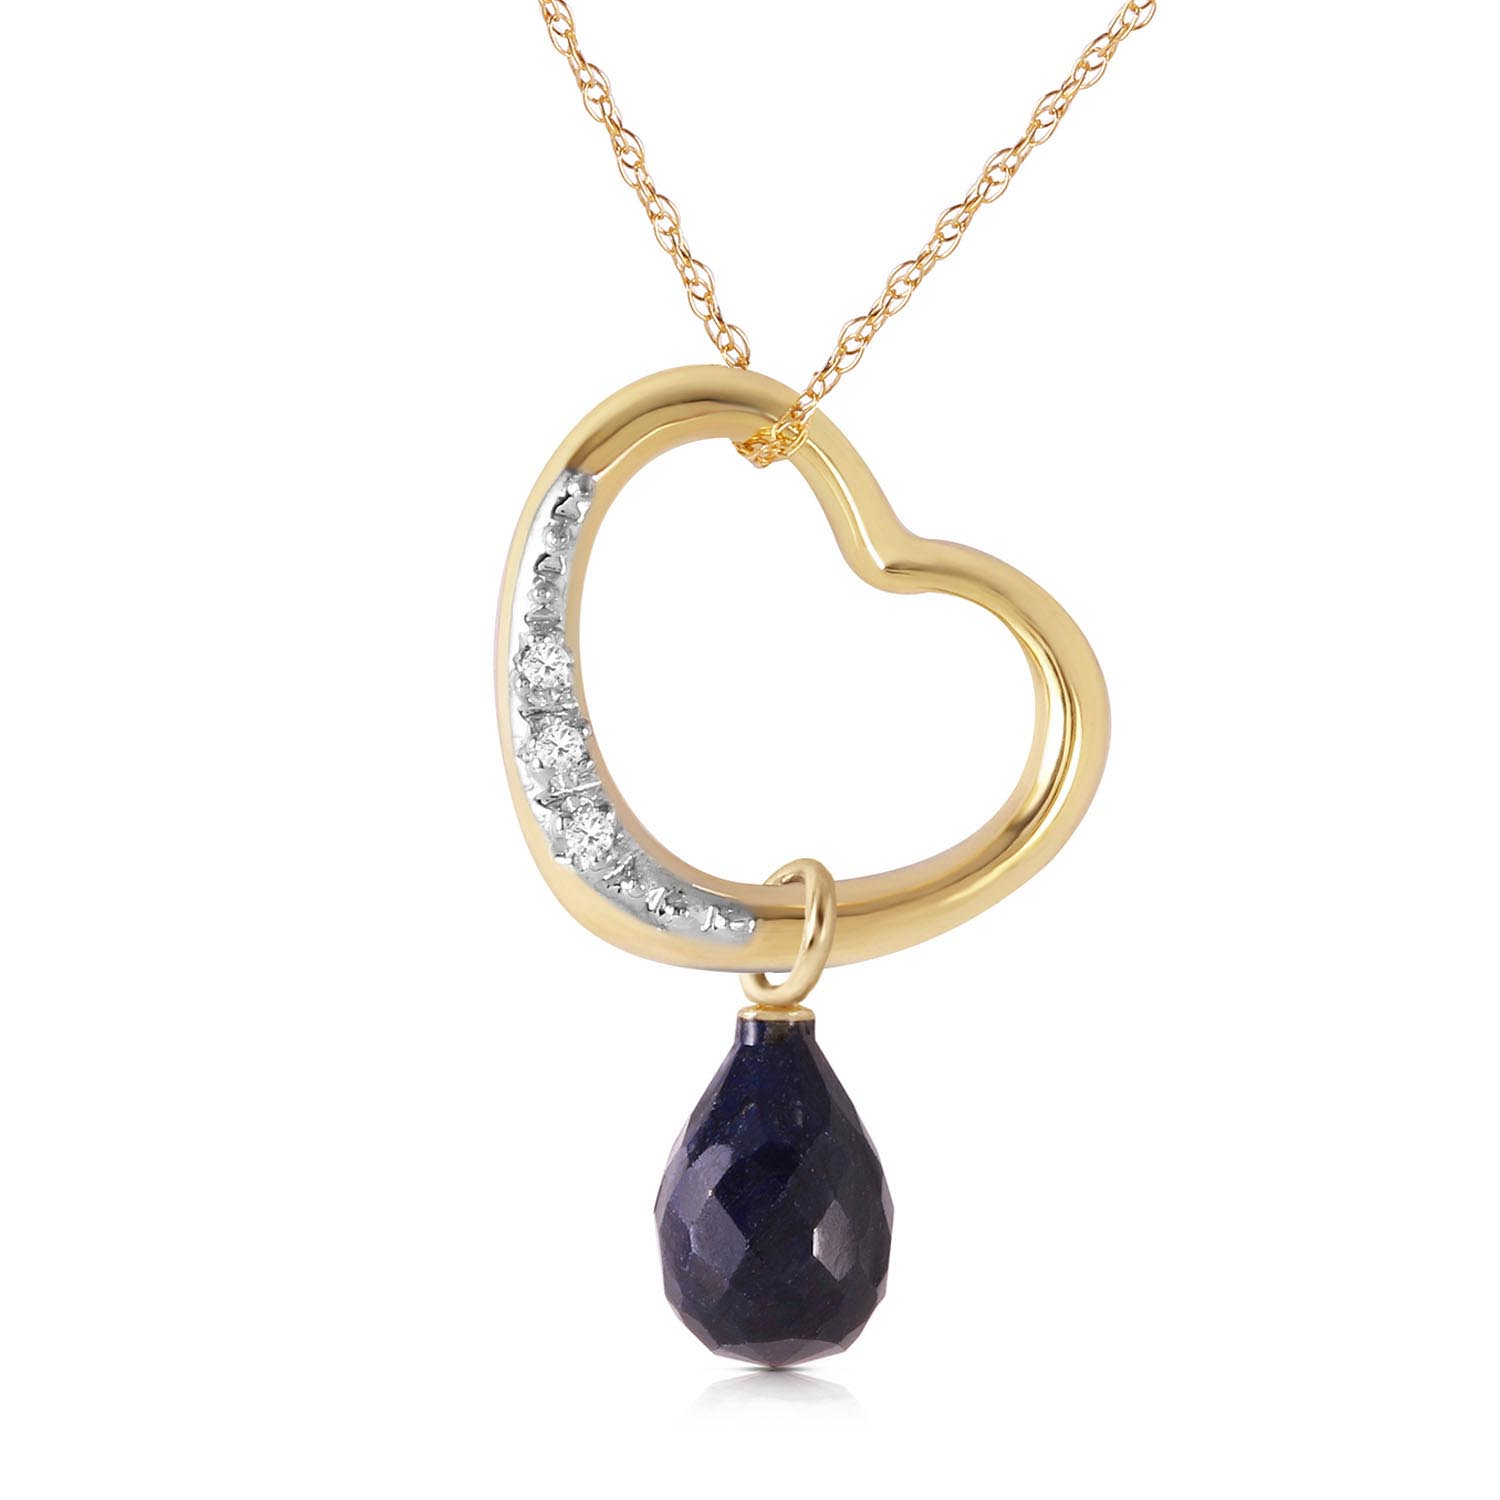 Sapphire and Diamond Pendant Necklace 3.3ct in 9ct Gold